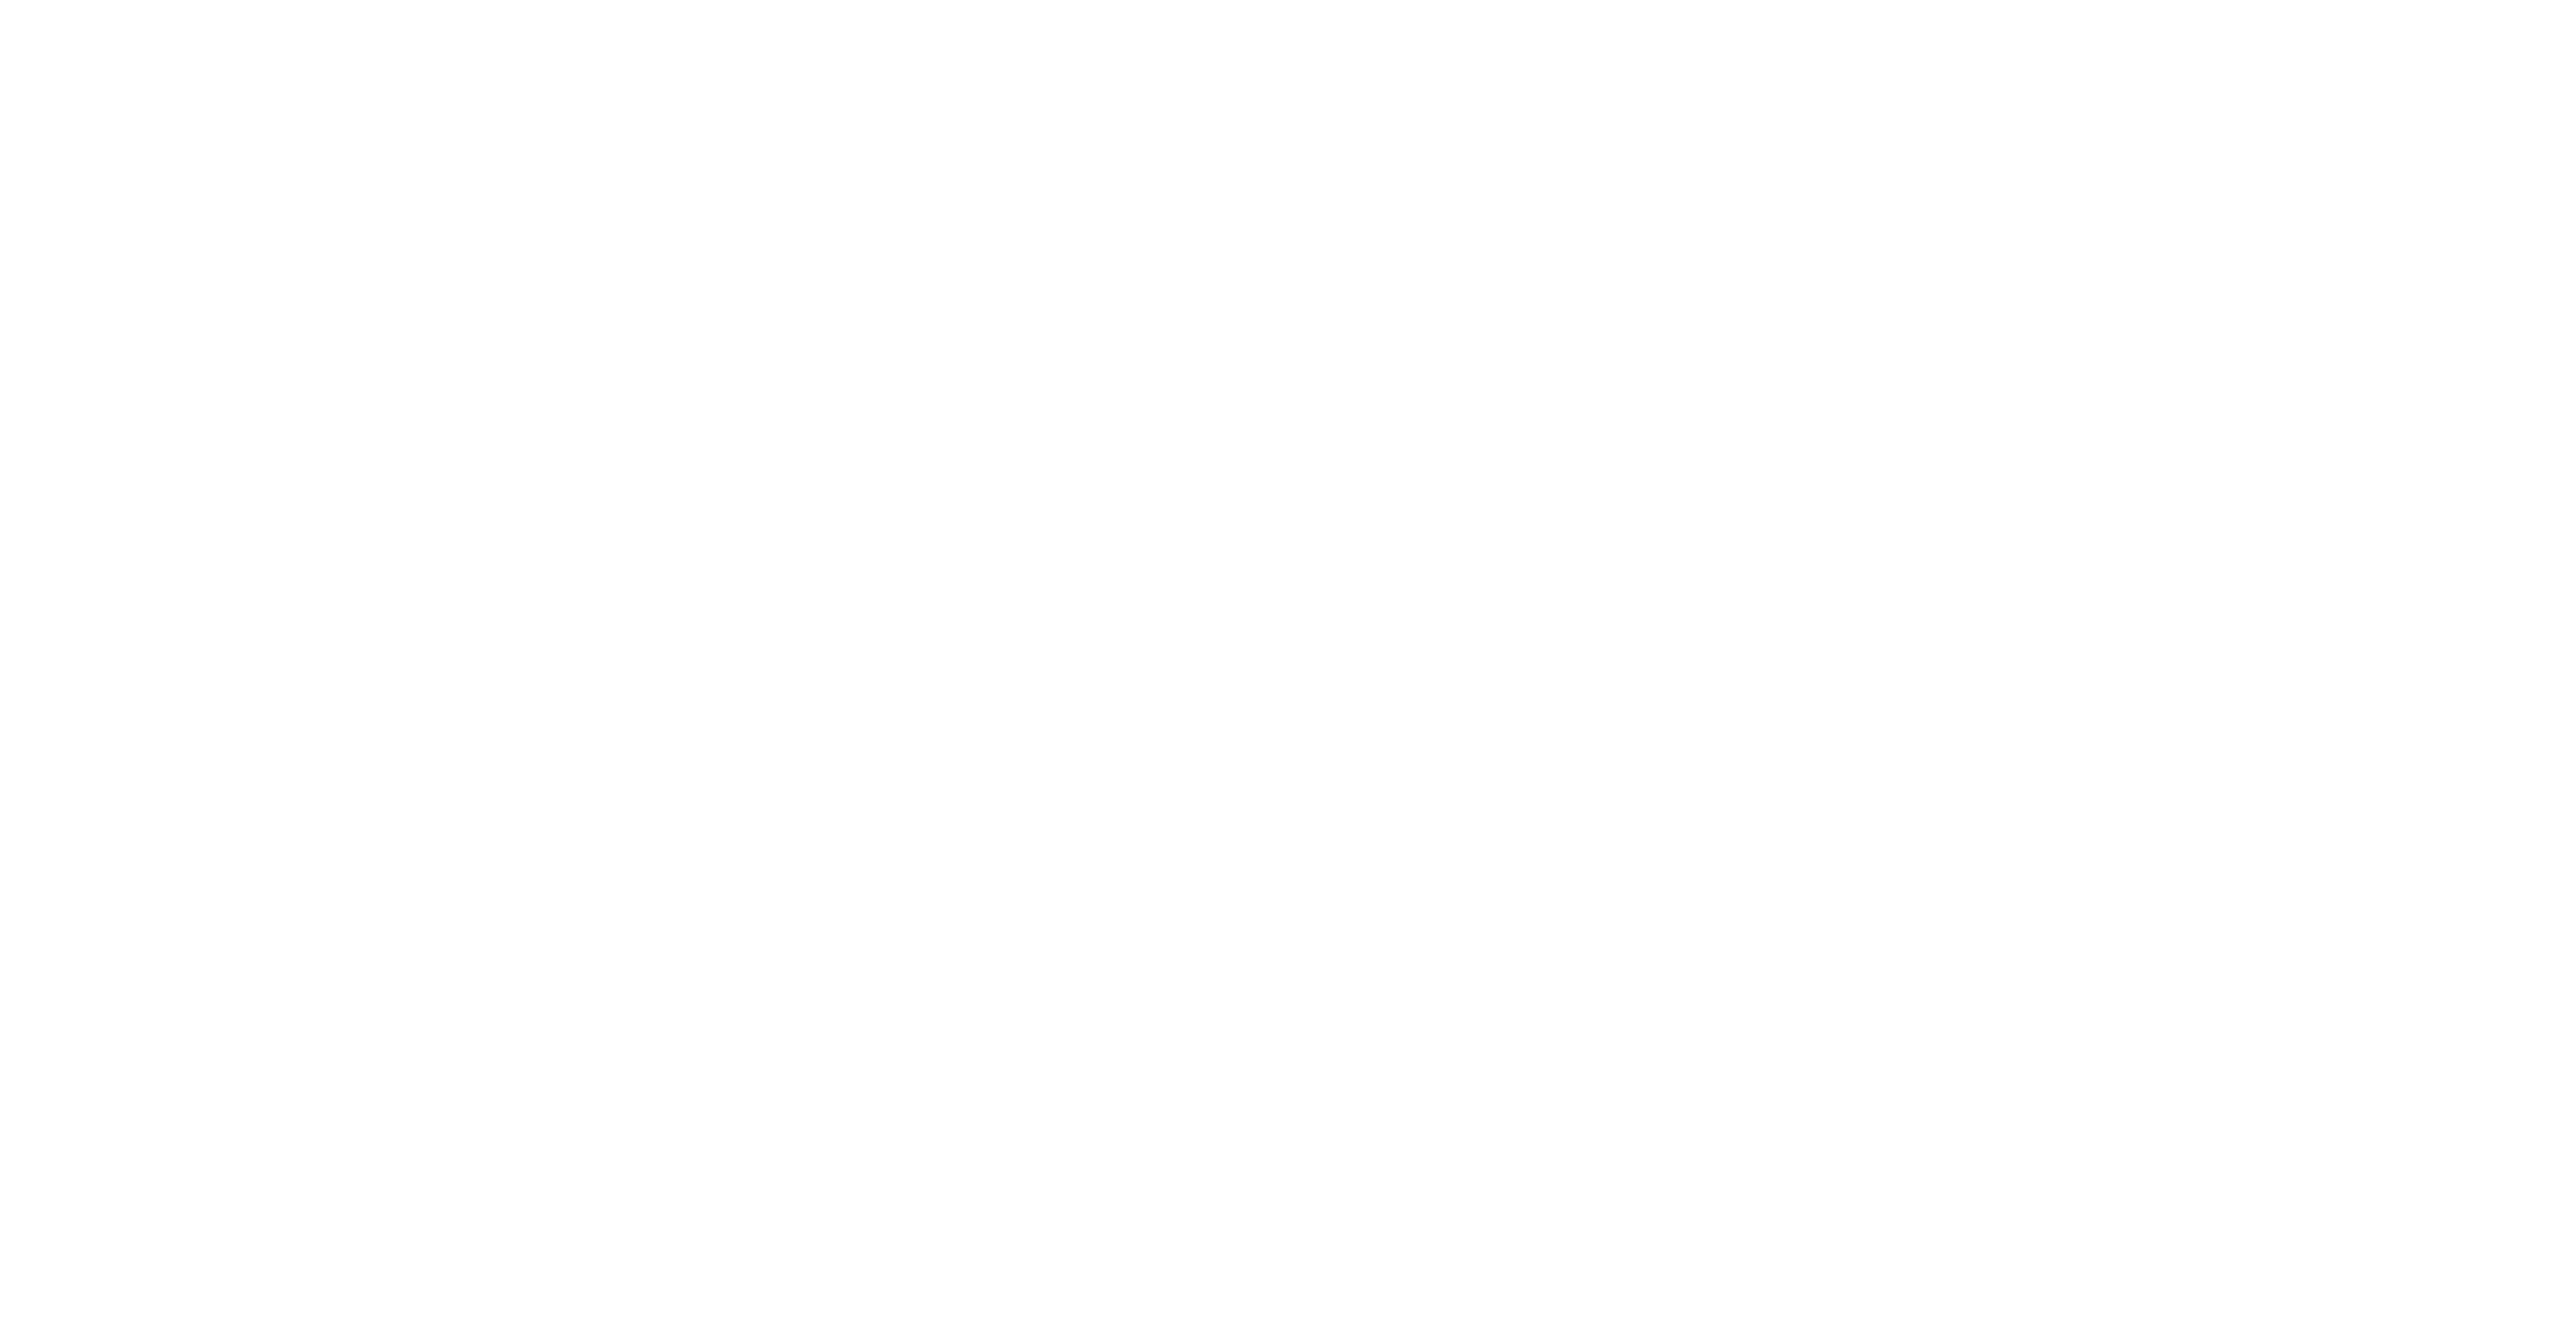 About WHO in the Western Pacific